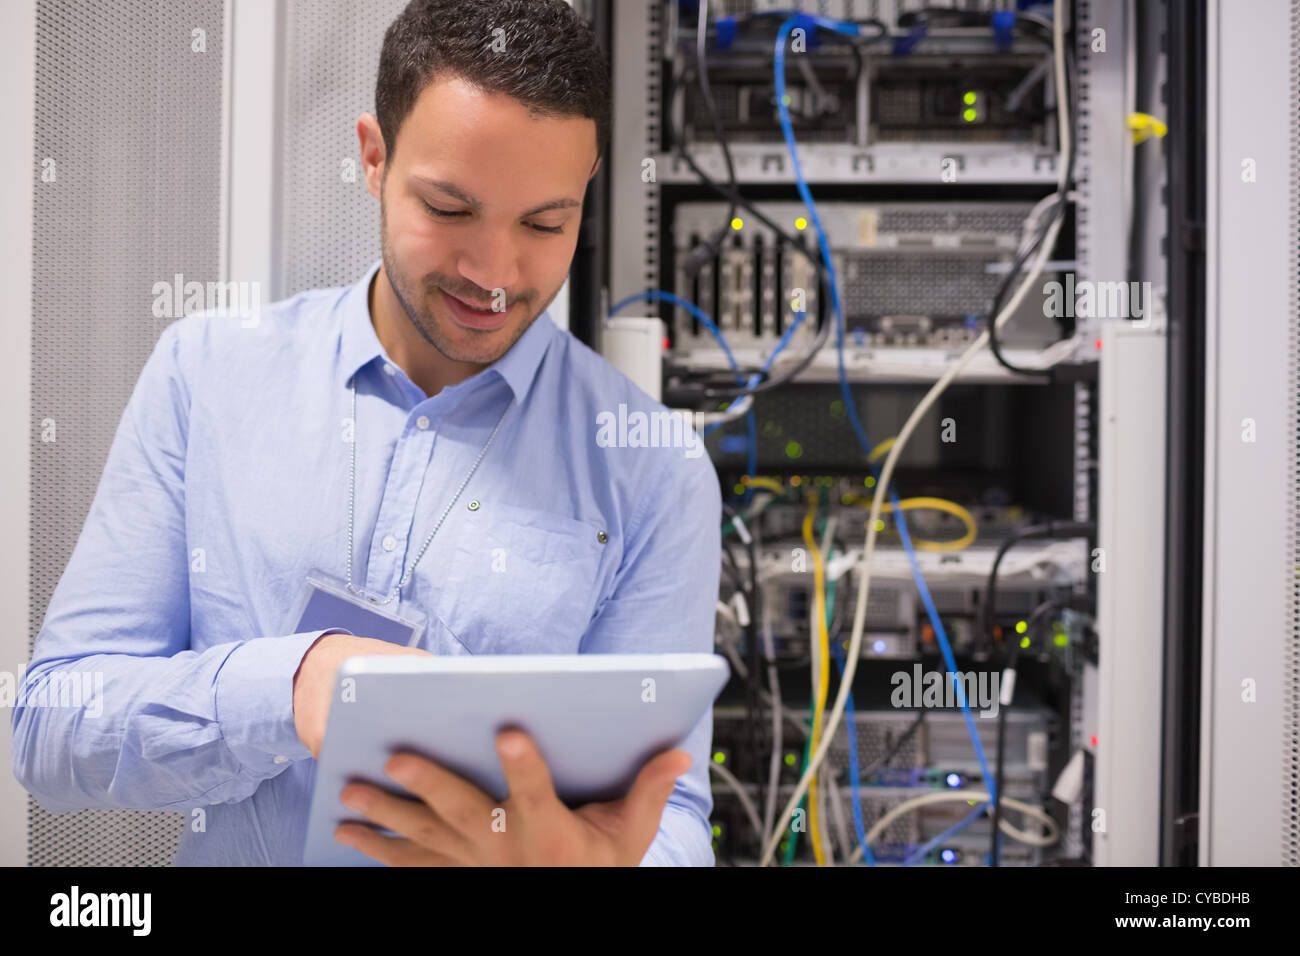 Data centre worker with tablet computer Stock Photo